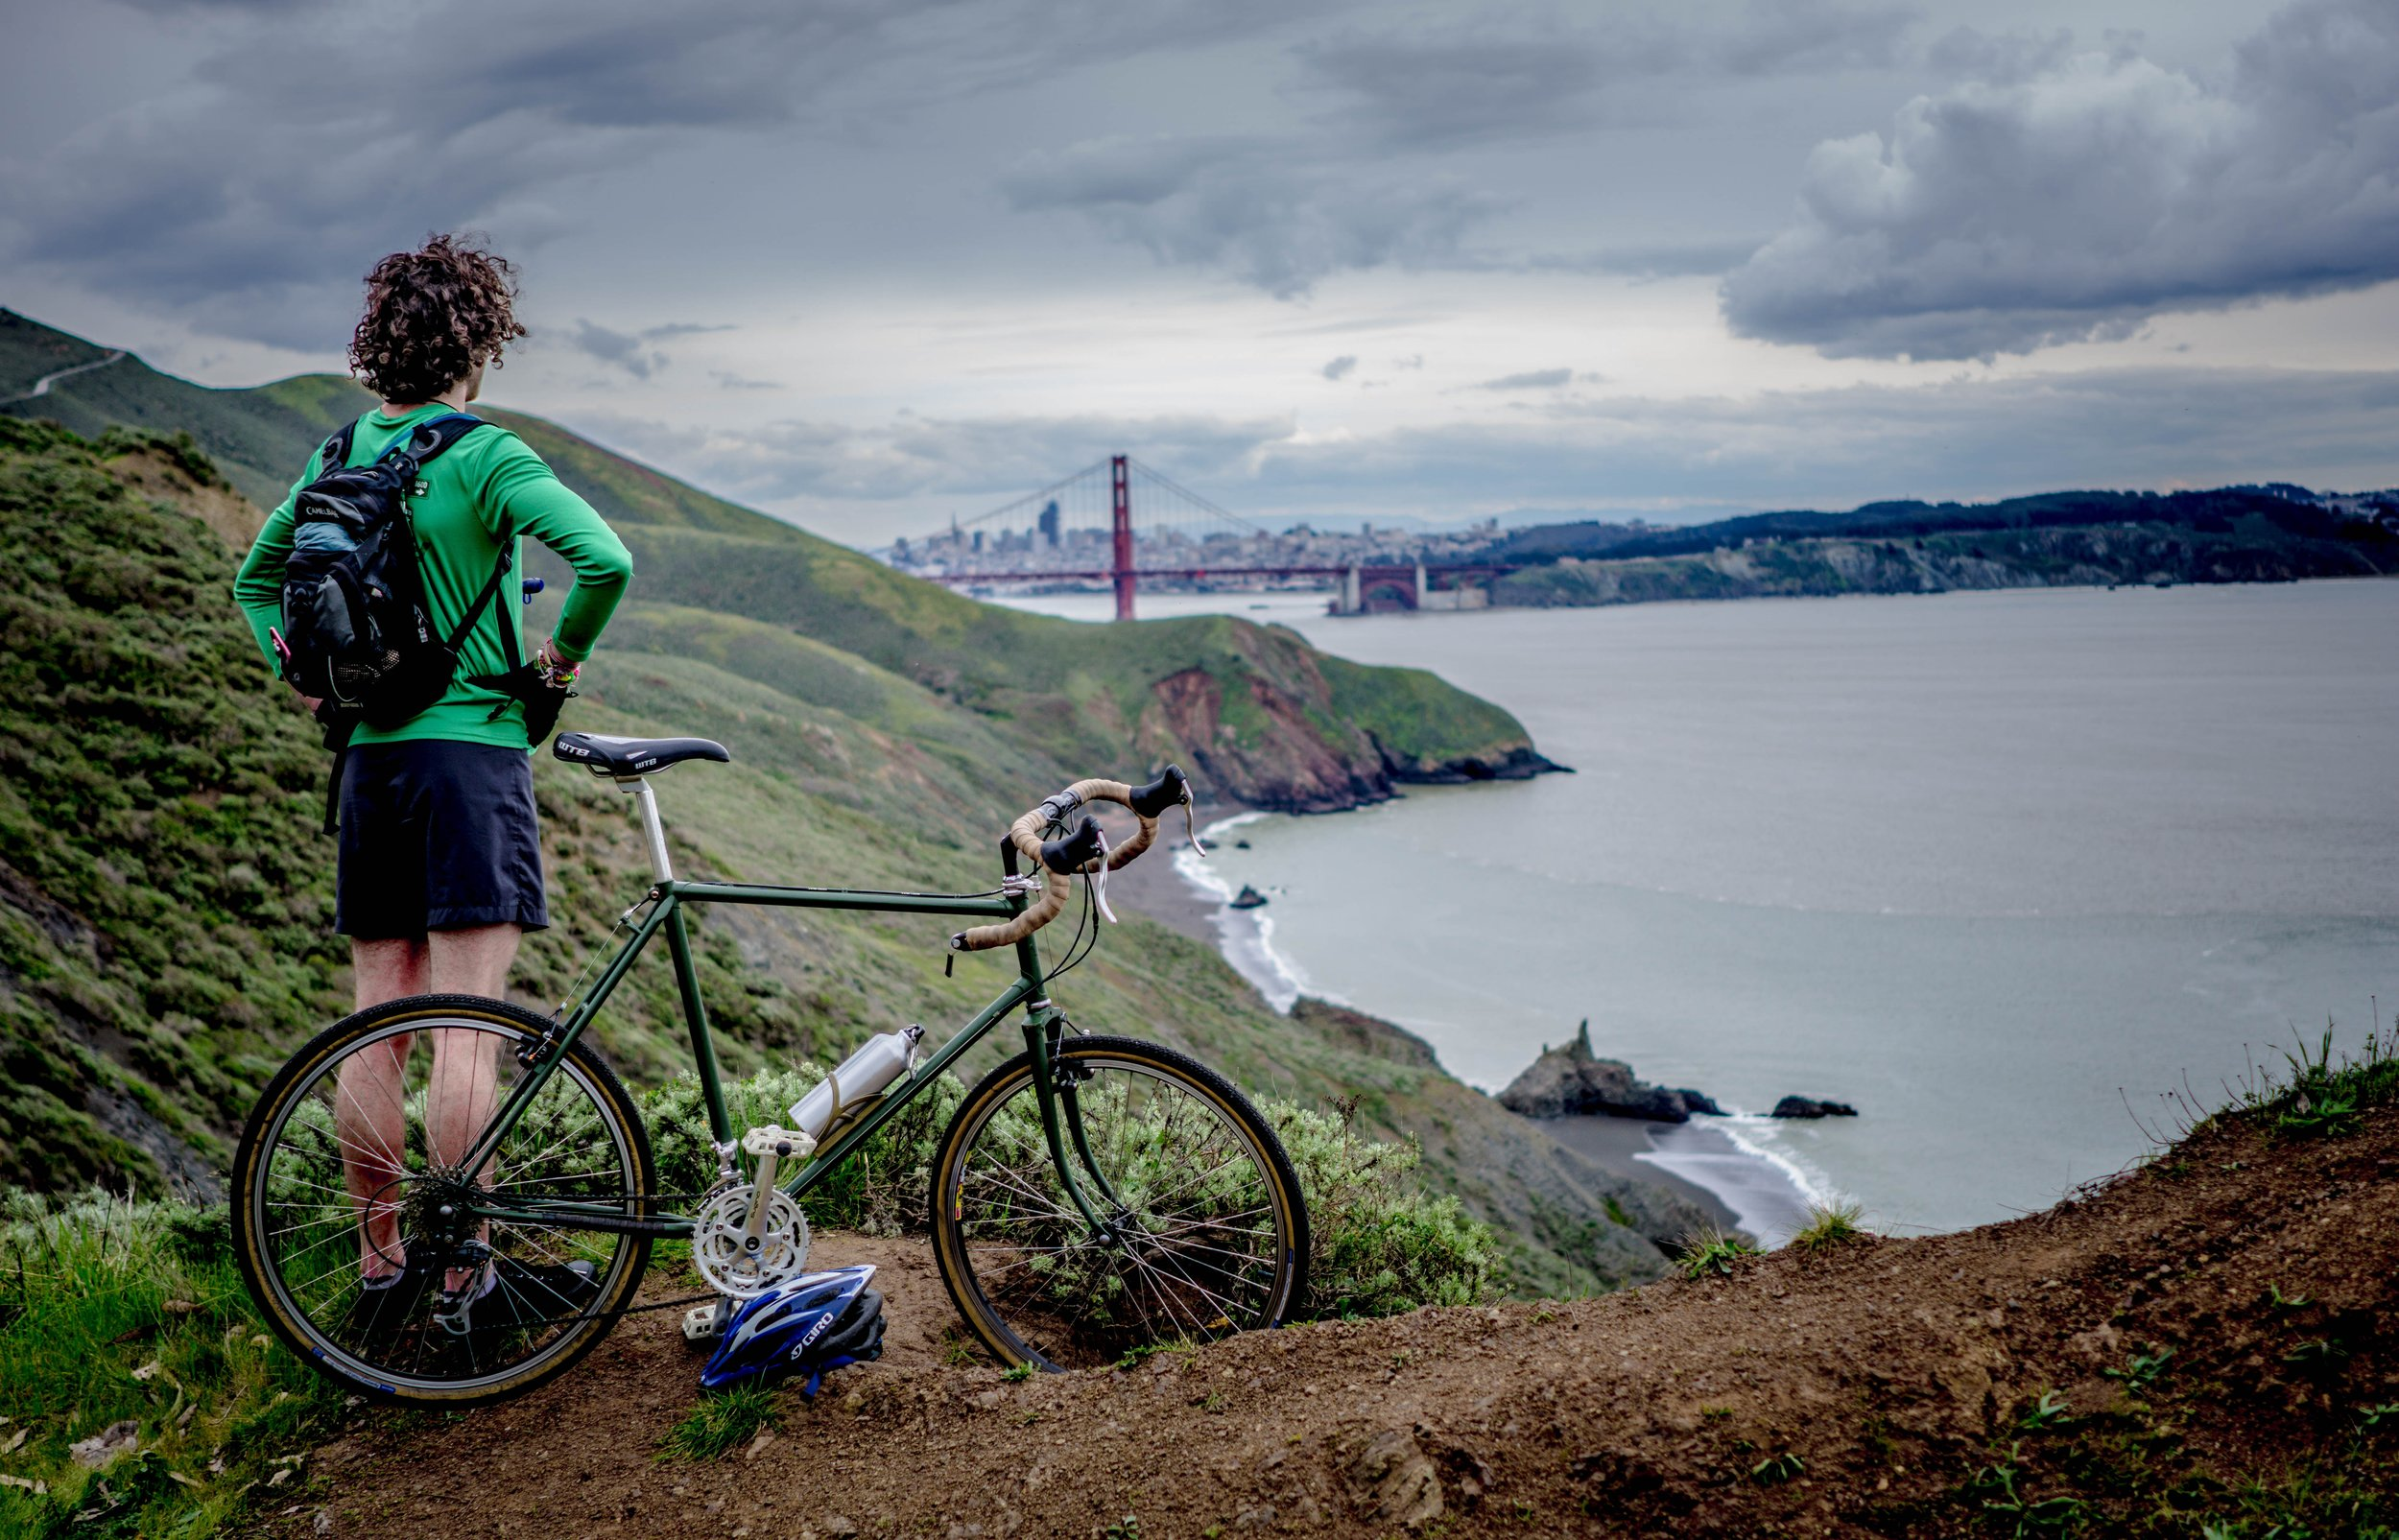 A scenic rest stop in the Marin Headlands. Photo by  Aaron Thomas  on  Unsplash